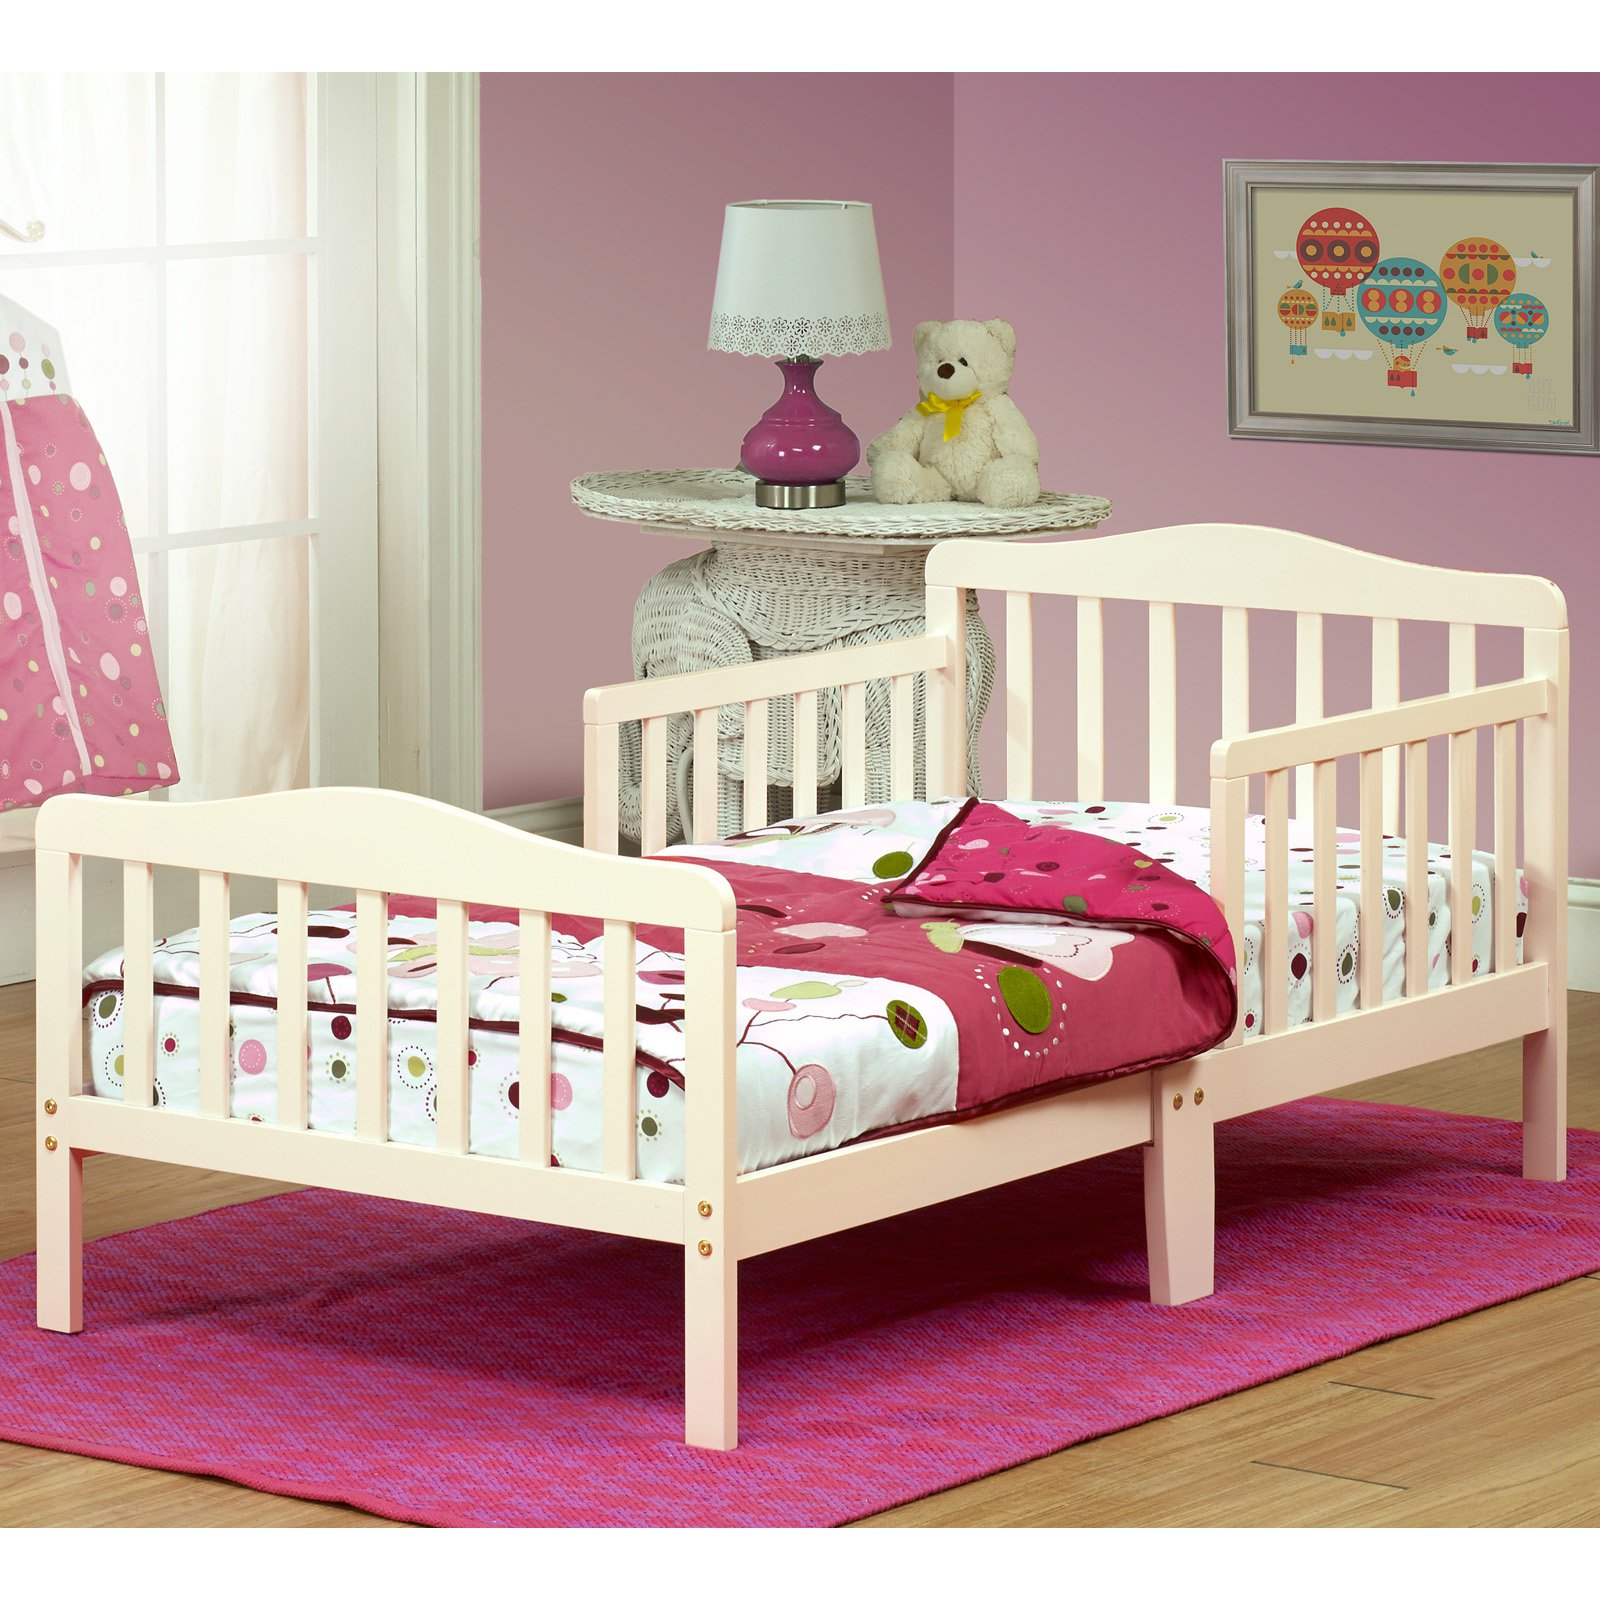 The Orbelle Contemporary Solid Wood Toddler Bed - French White